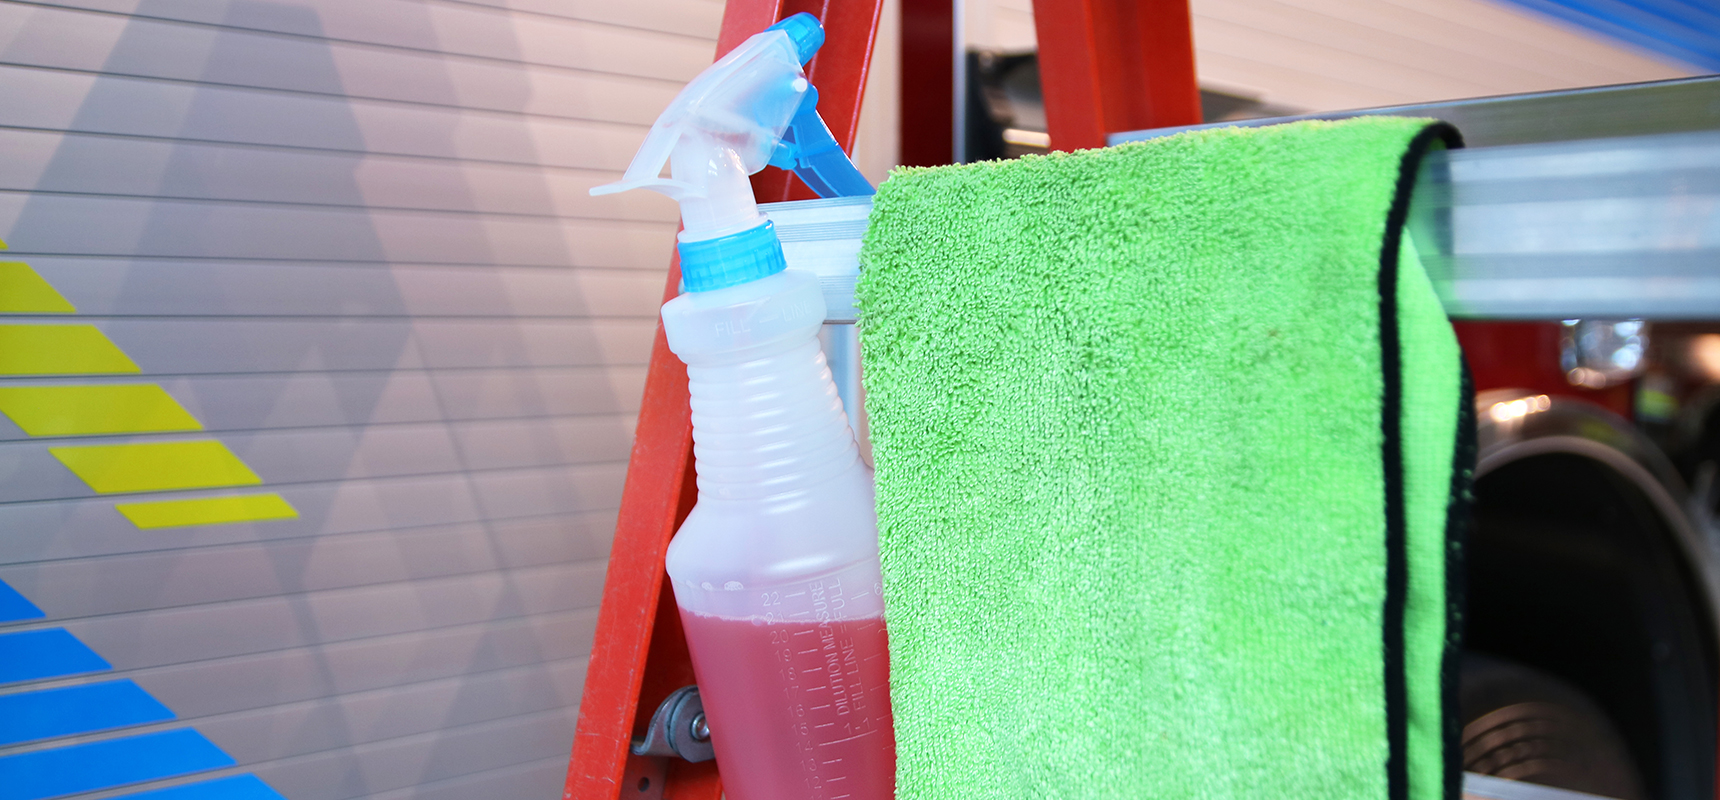 Fire apparatus being washed with a microfiber sponge using Pierce's five tips